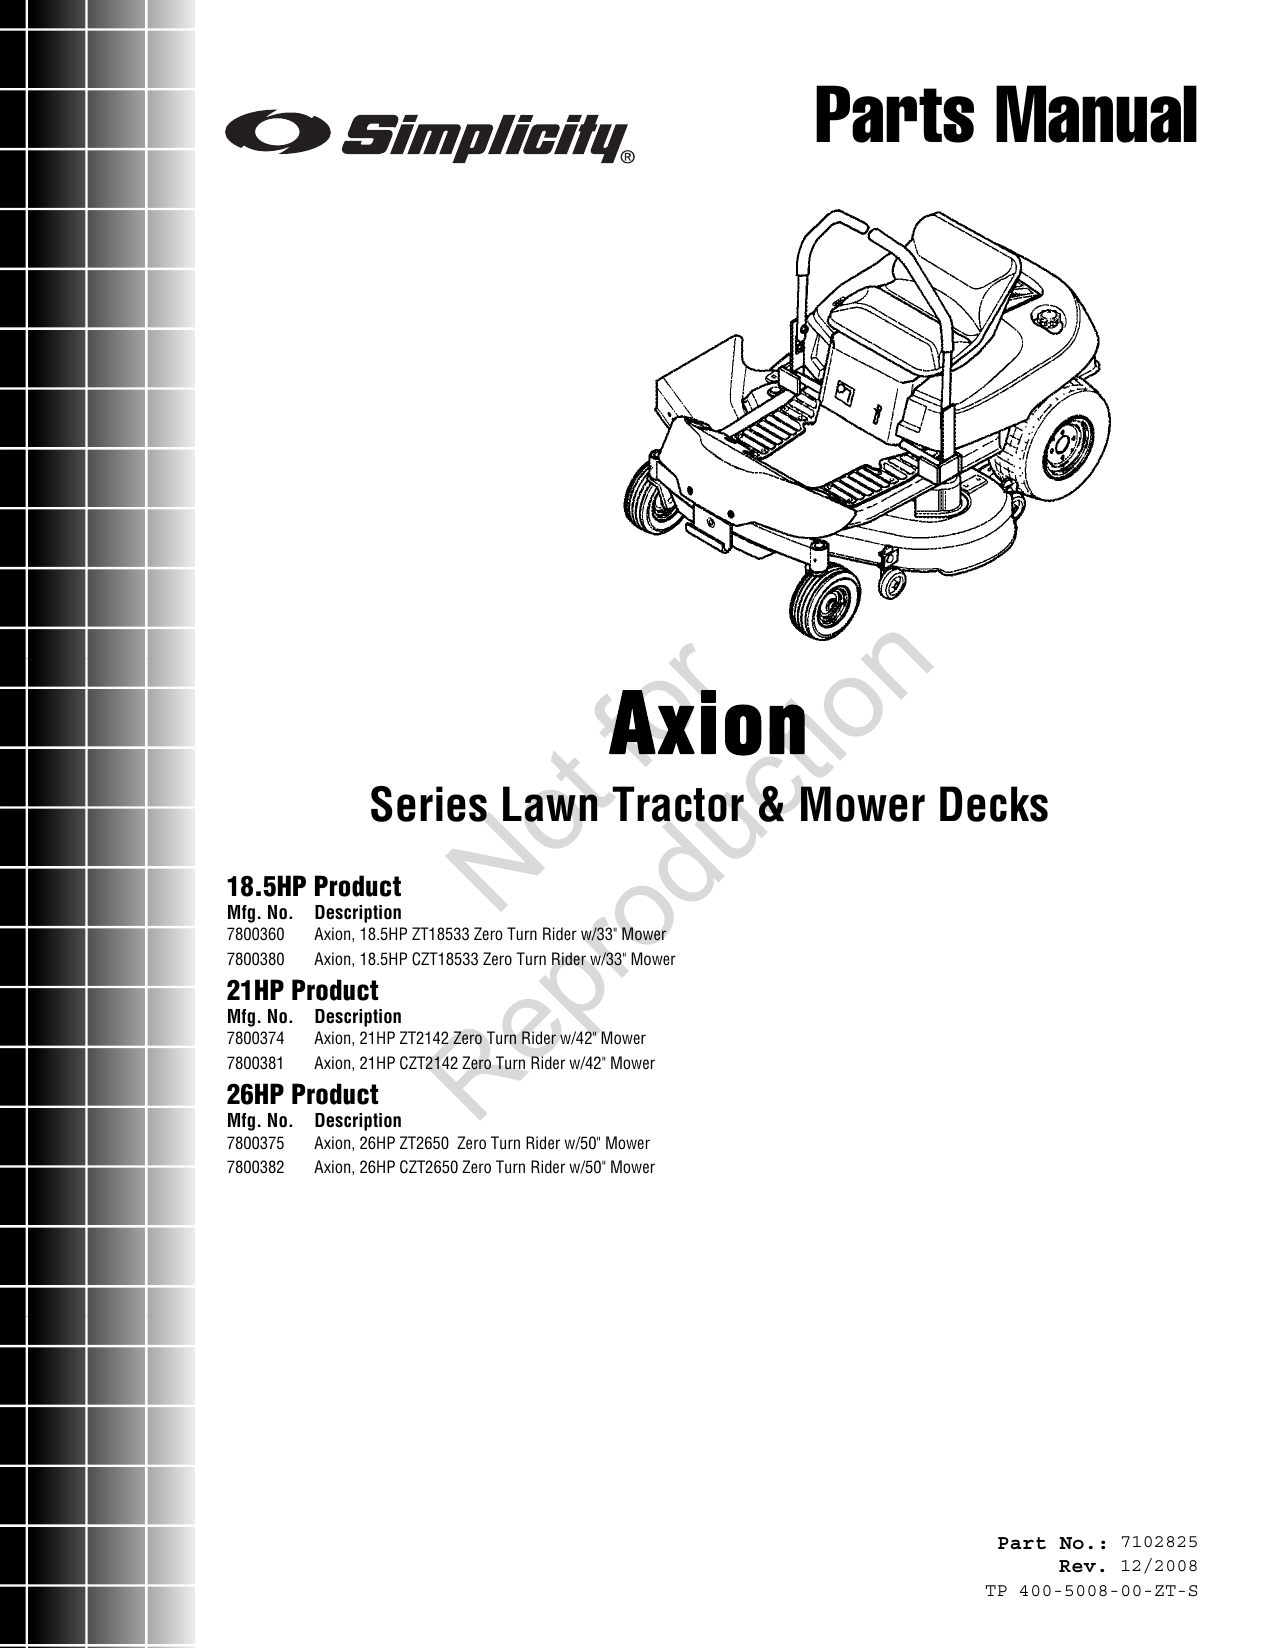 Simplicity 7800360 Axion Parts Manual 7102825 Series Lawn